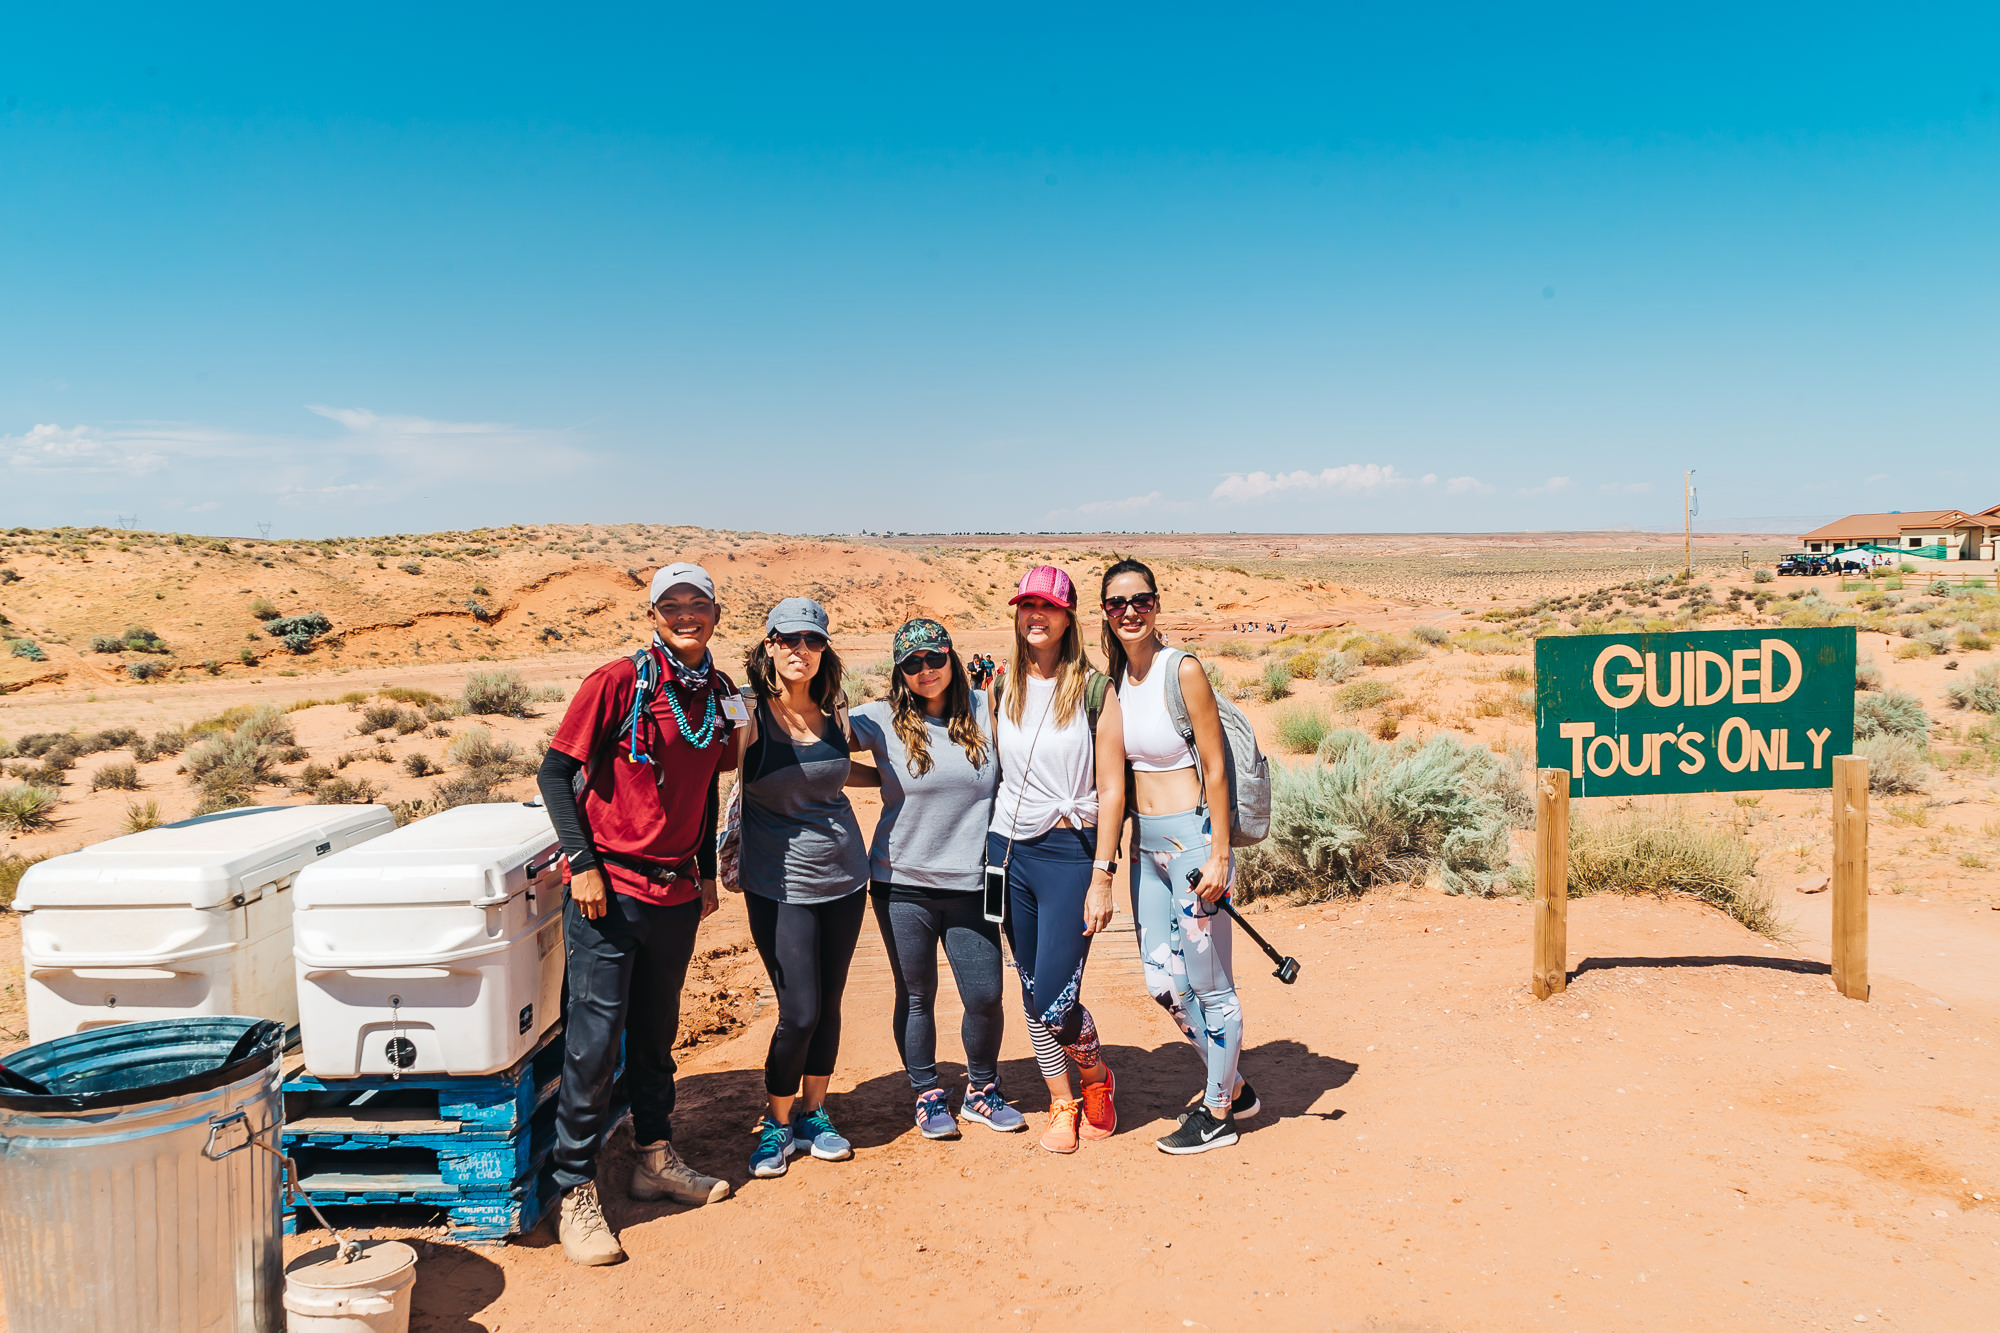 Our awesome tour guide, Garrisson, with   Dixie Ellis' Lower Antelope Canyon Tours